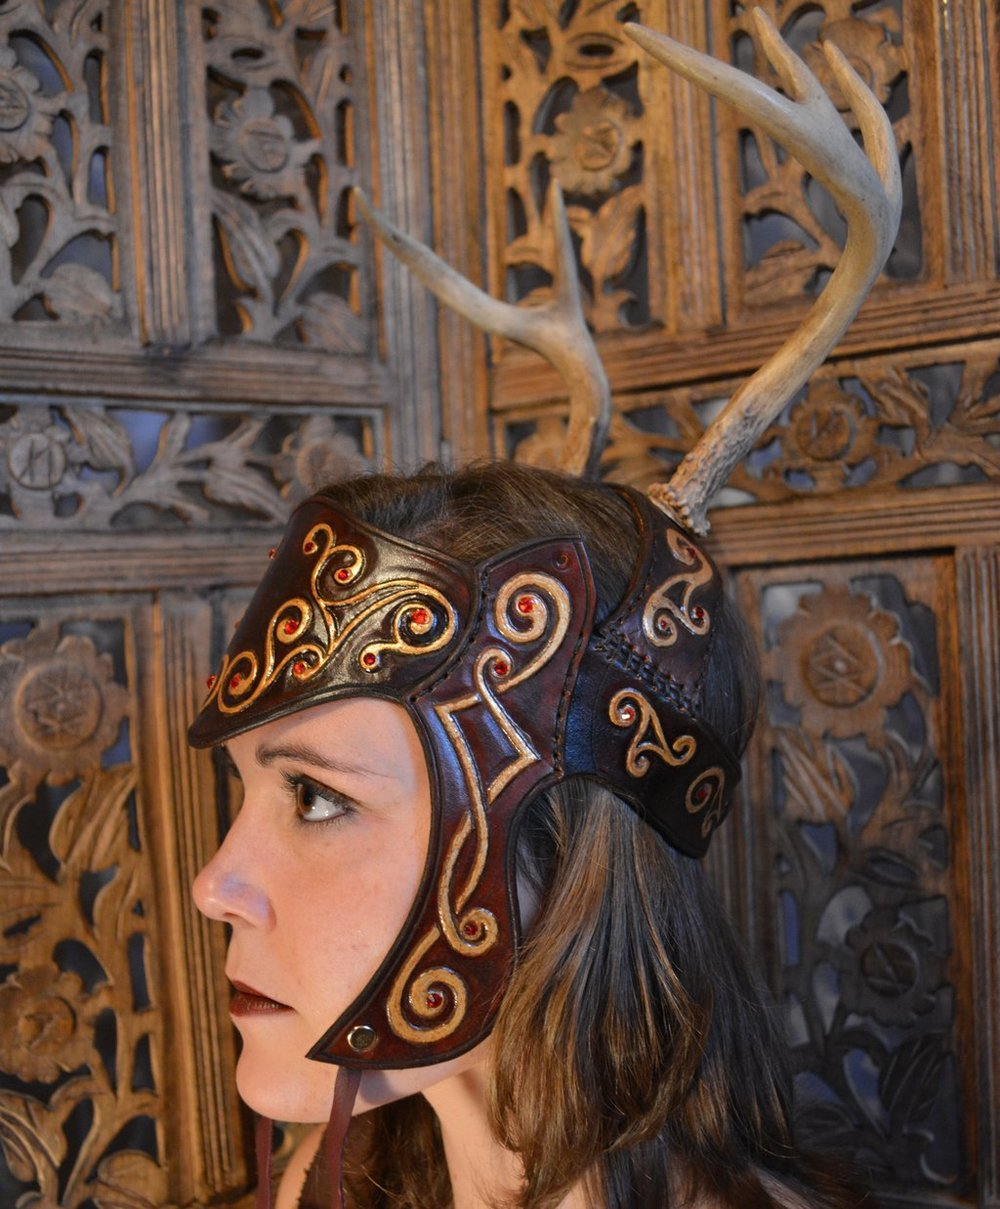 celtic_queen_antler_headdress_by_savagepunkstudio-d6x537y.jpg